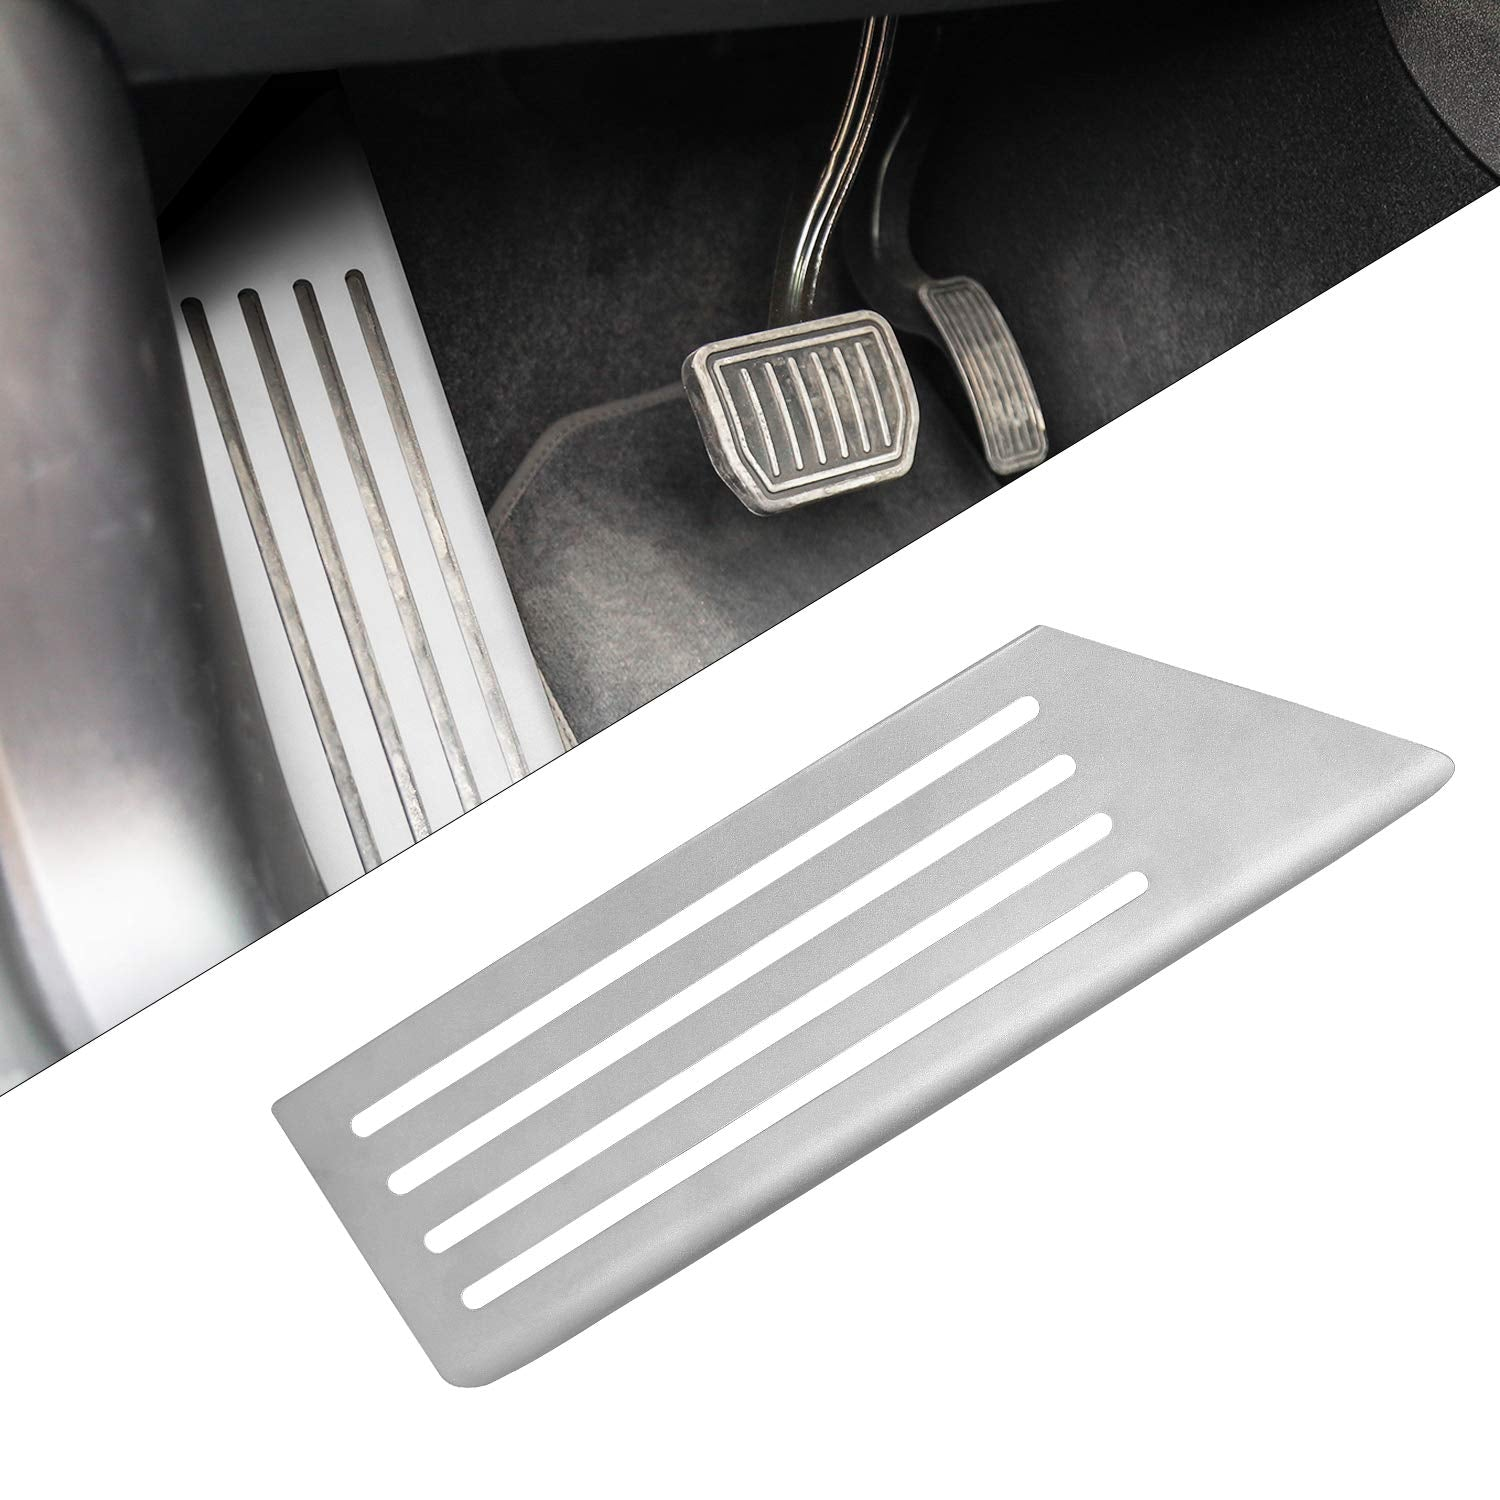 Tesla Model 3 Stainless Steel Footrest Dead Pedal